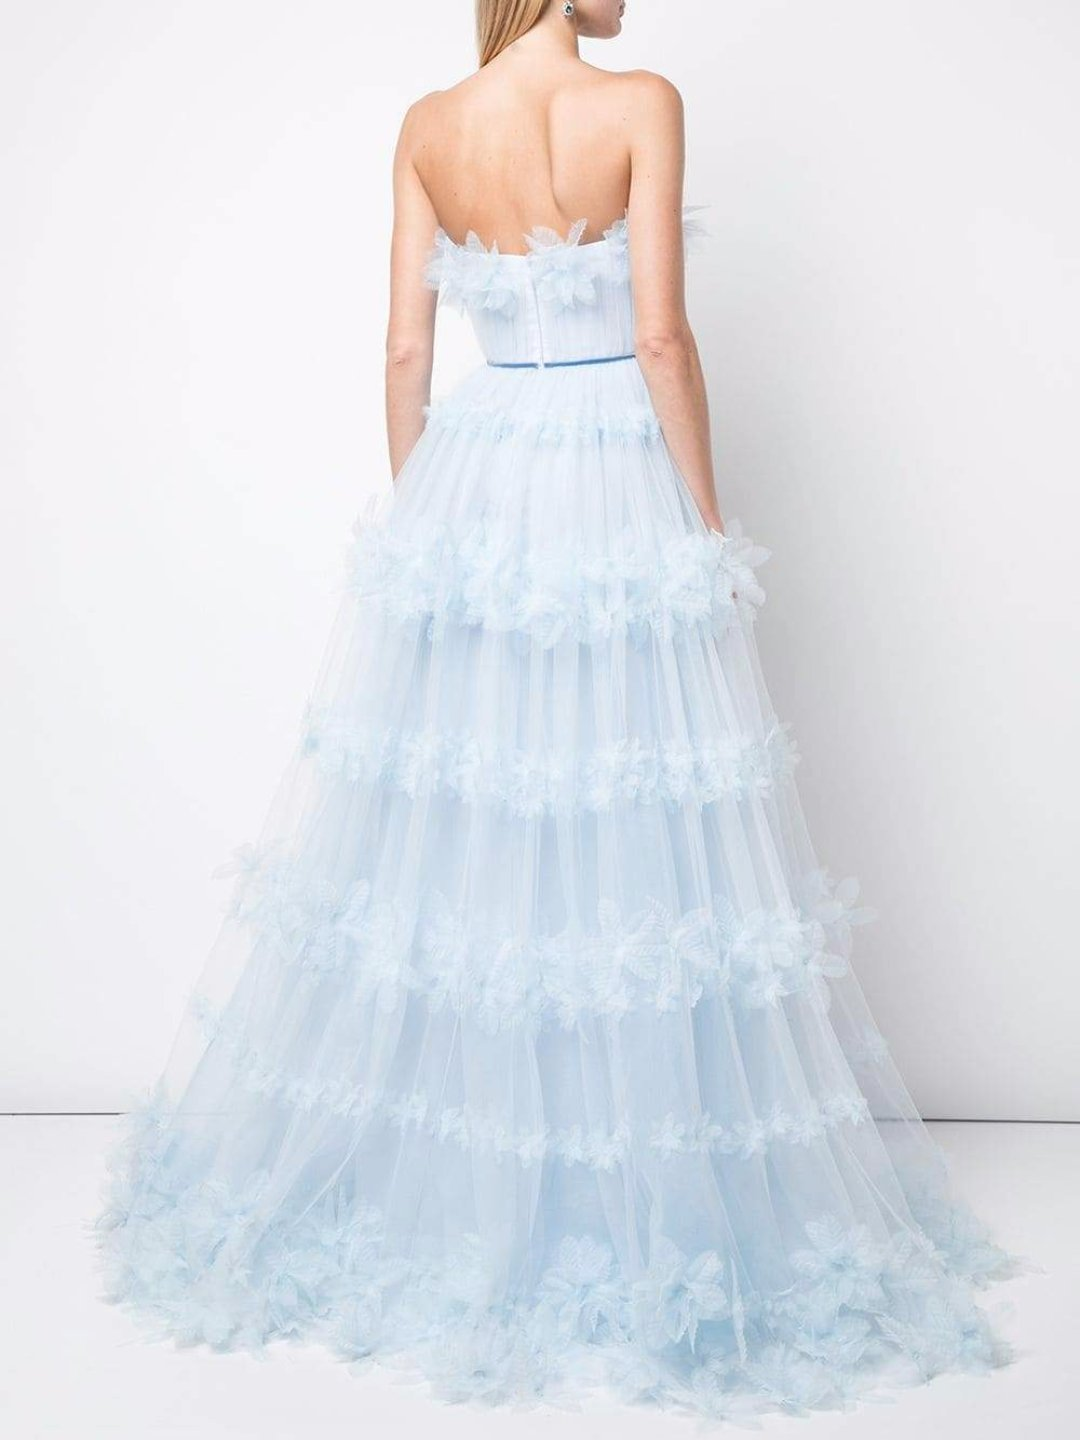 3D Floral Tulle Ballgown